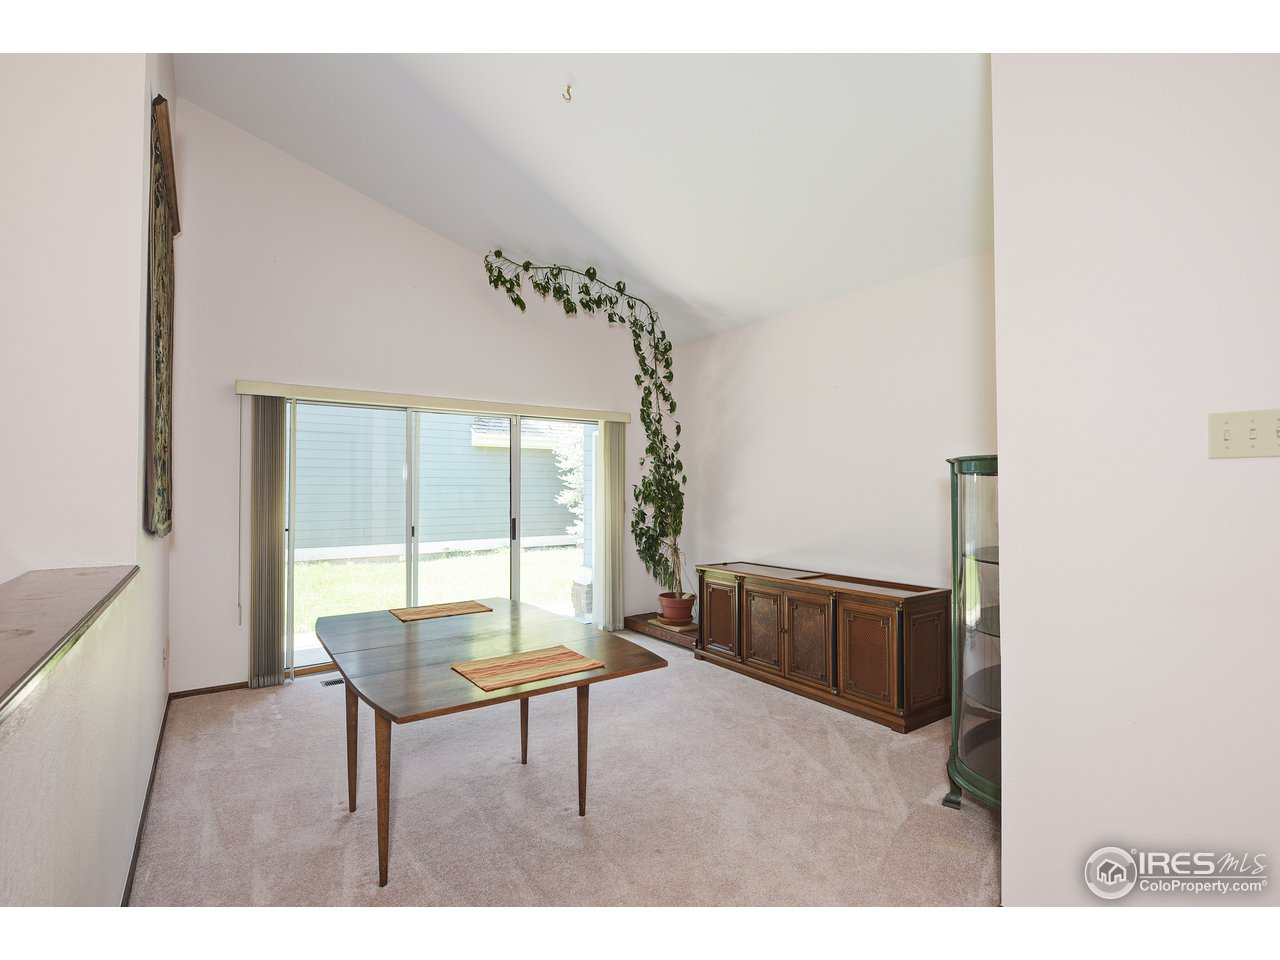 Spacious Formal Dining room opens to patio